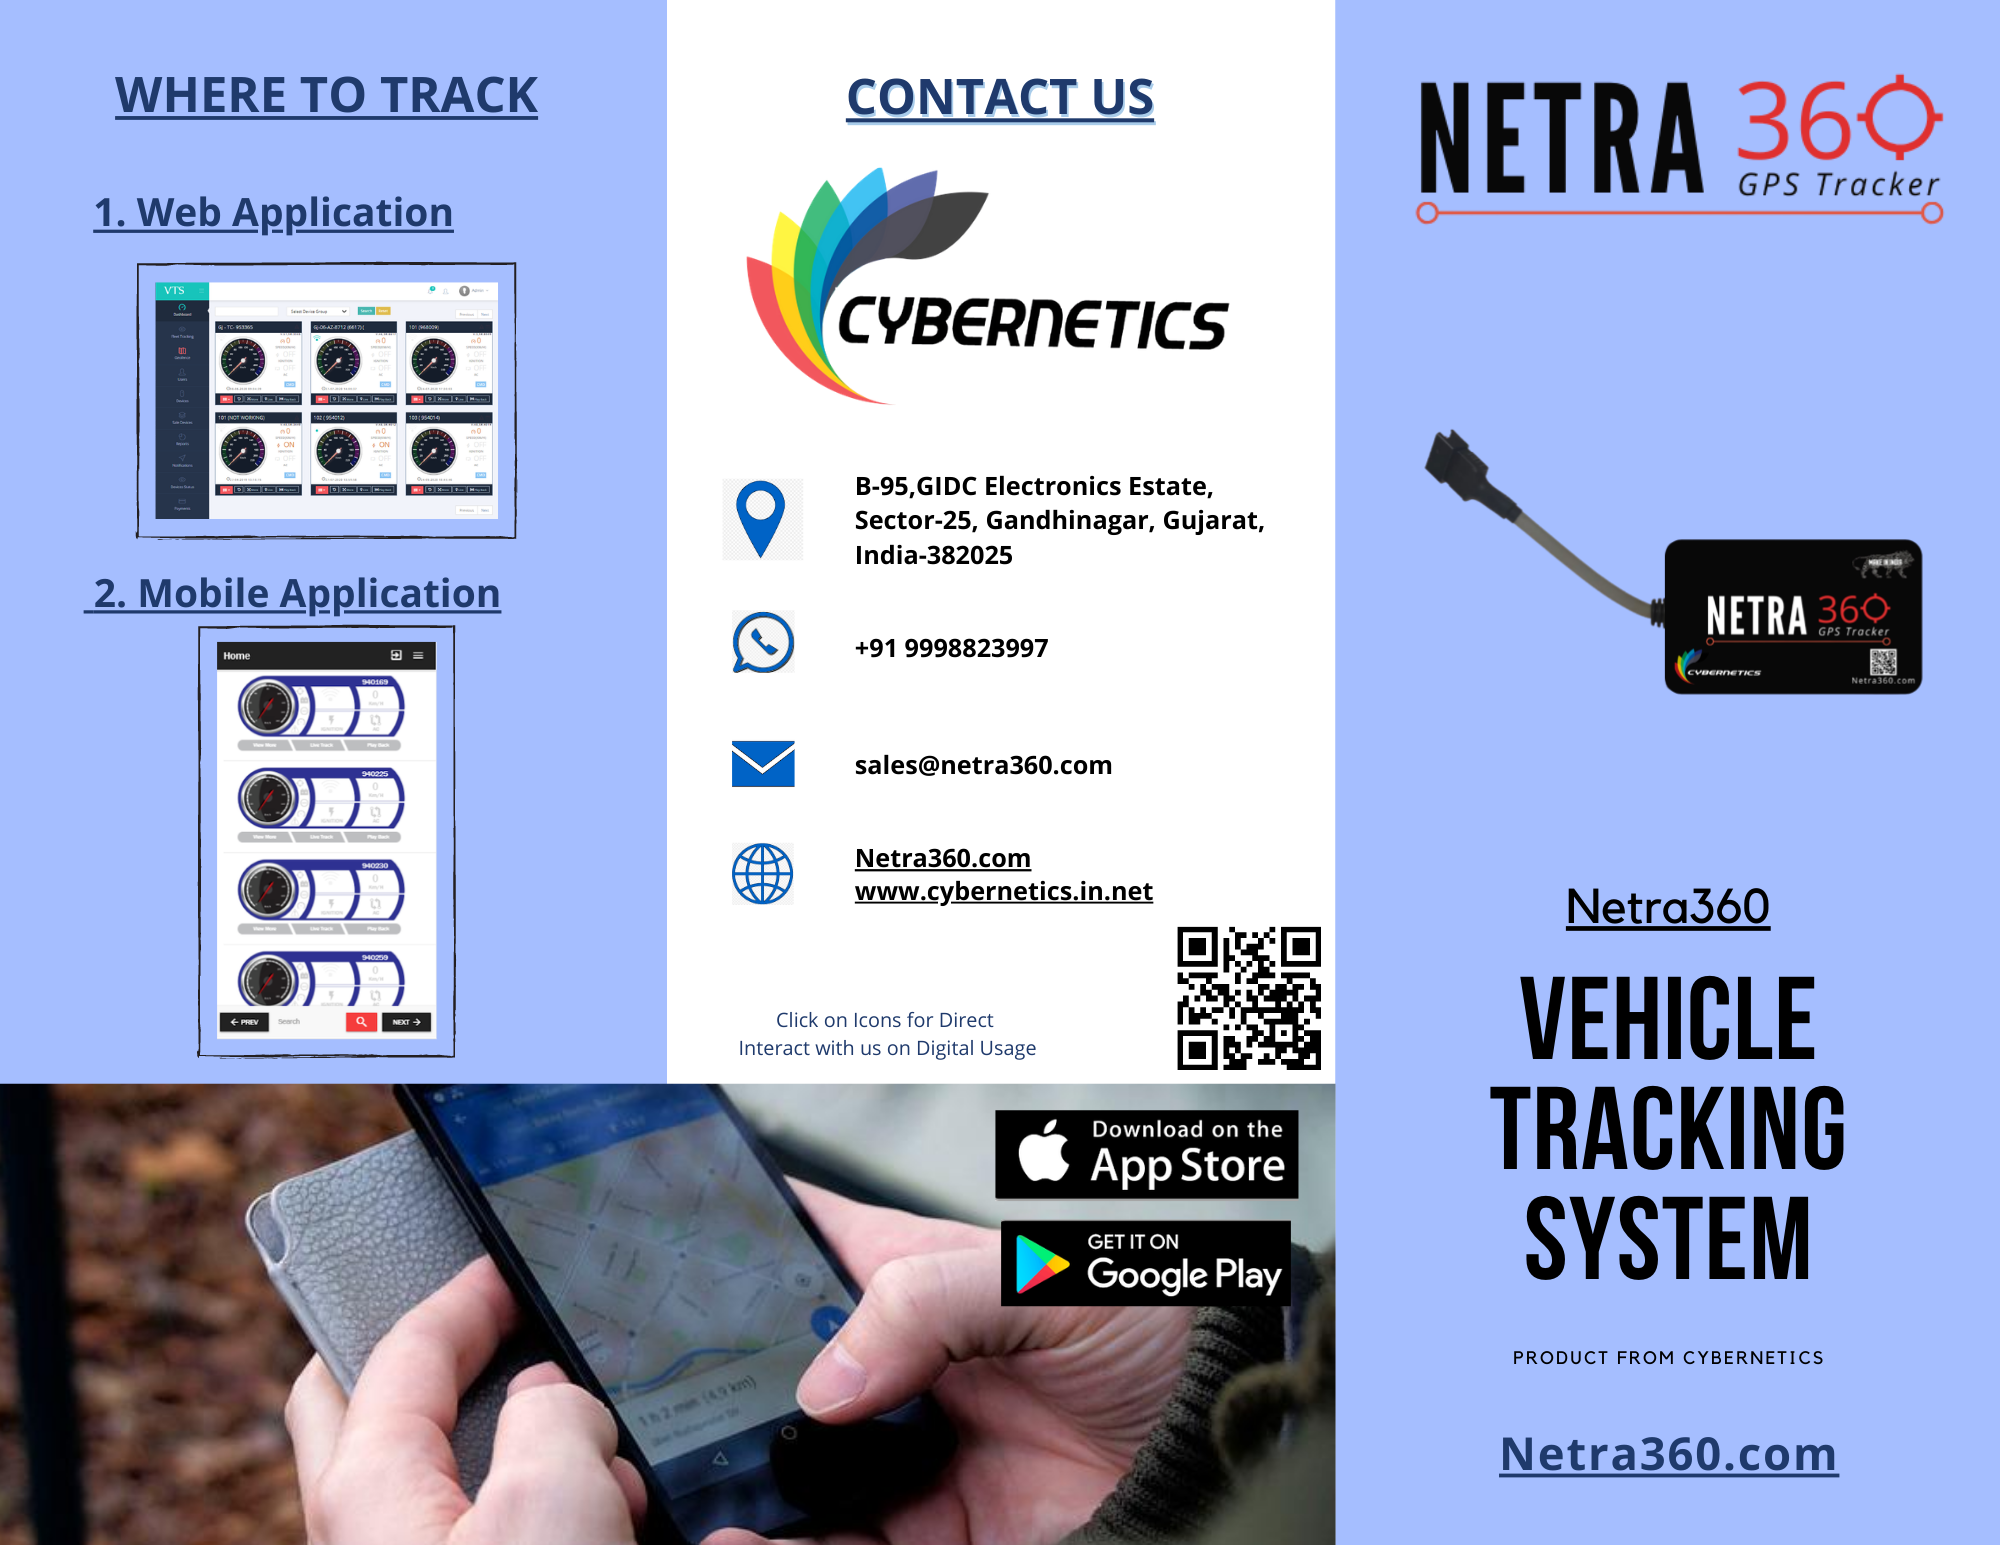 Redbus Compatible GPS Tracker - Made in India product at lowest price in Industry.